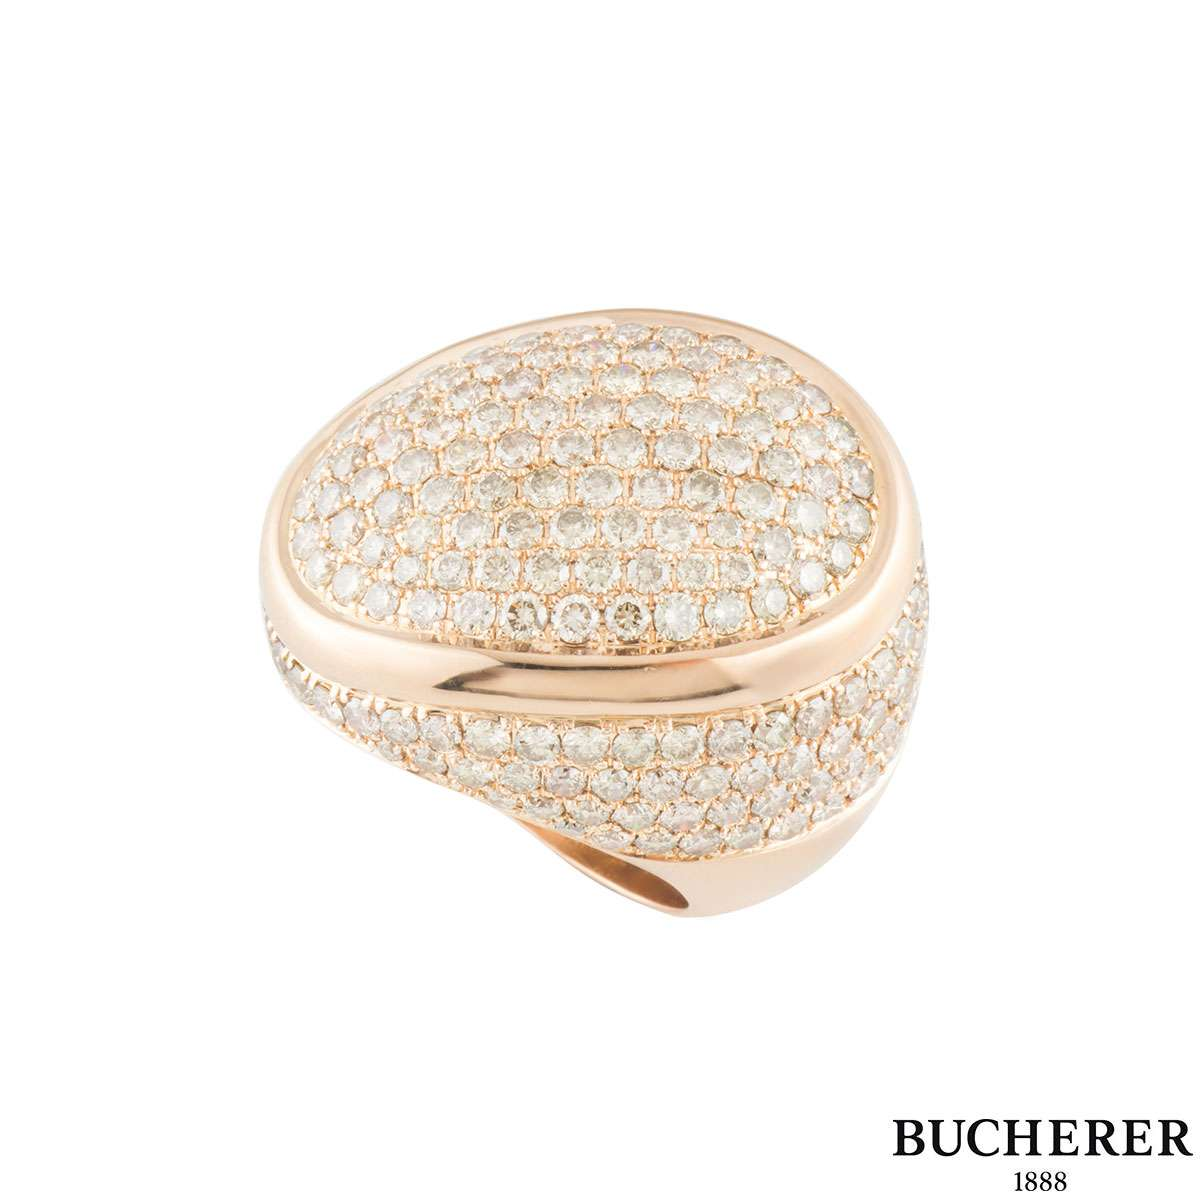 Bucherer Diamond Ring